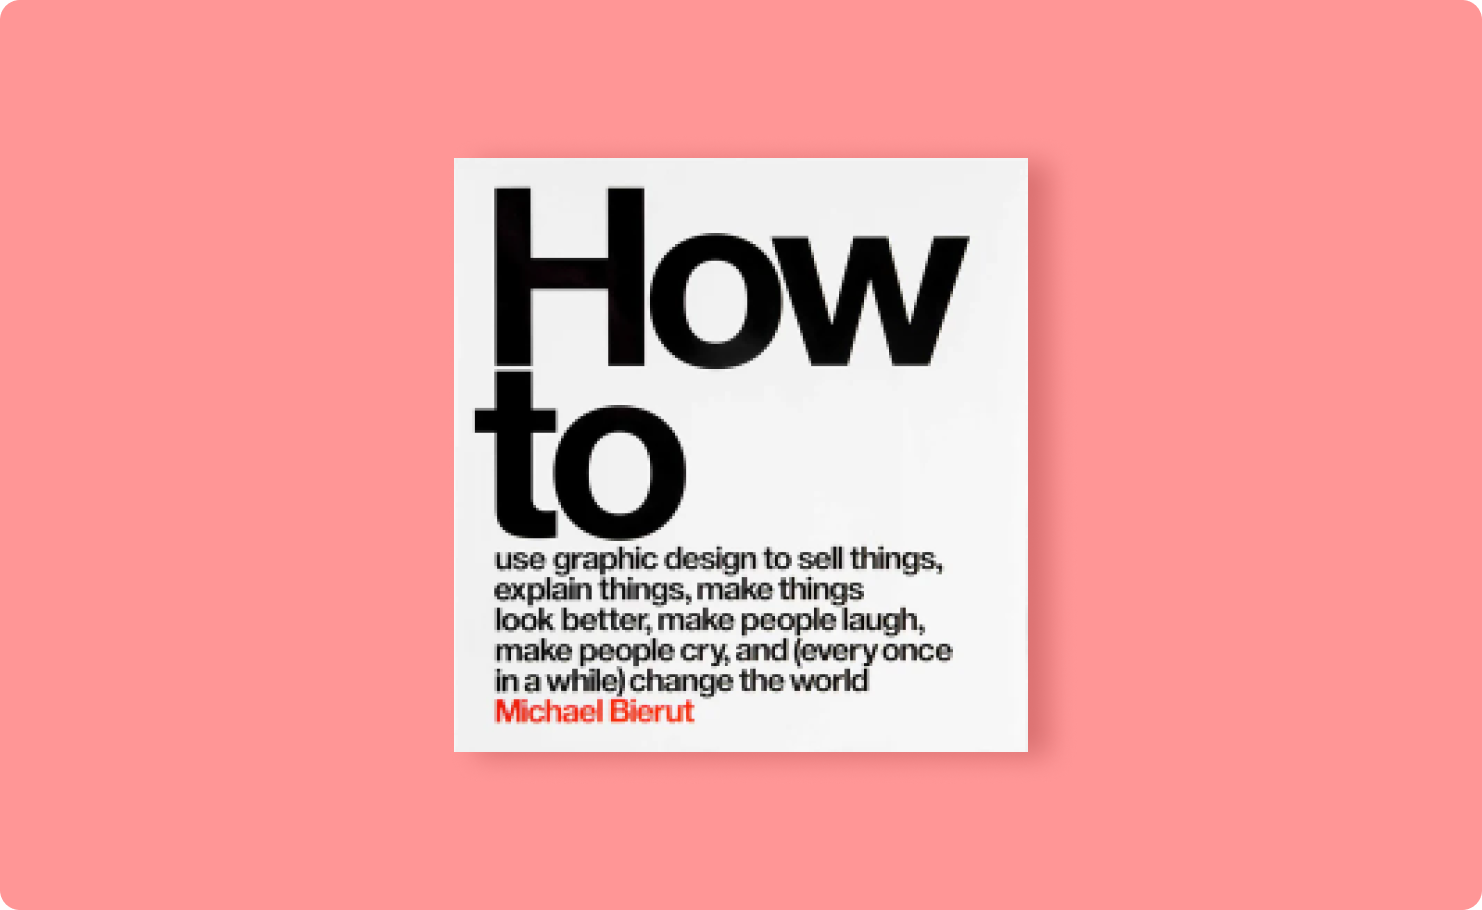 Cover image of the book: How to, by Michael Bierut